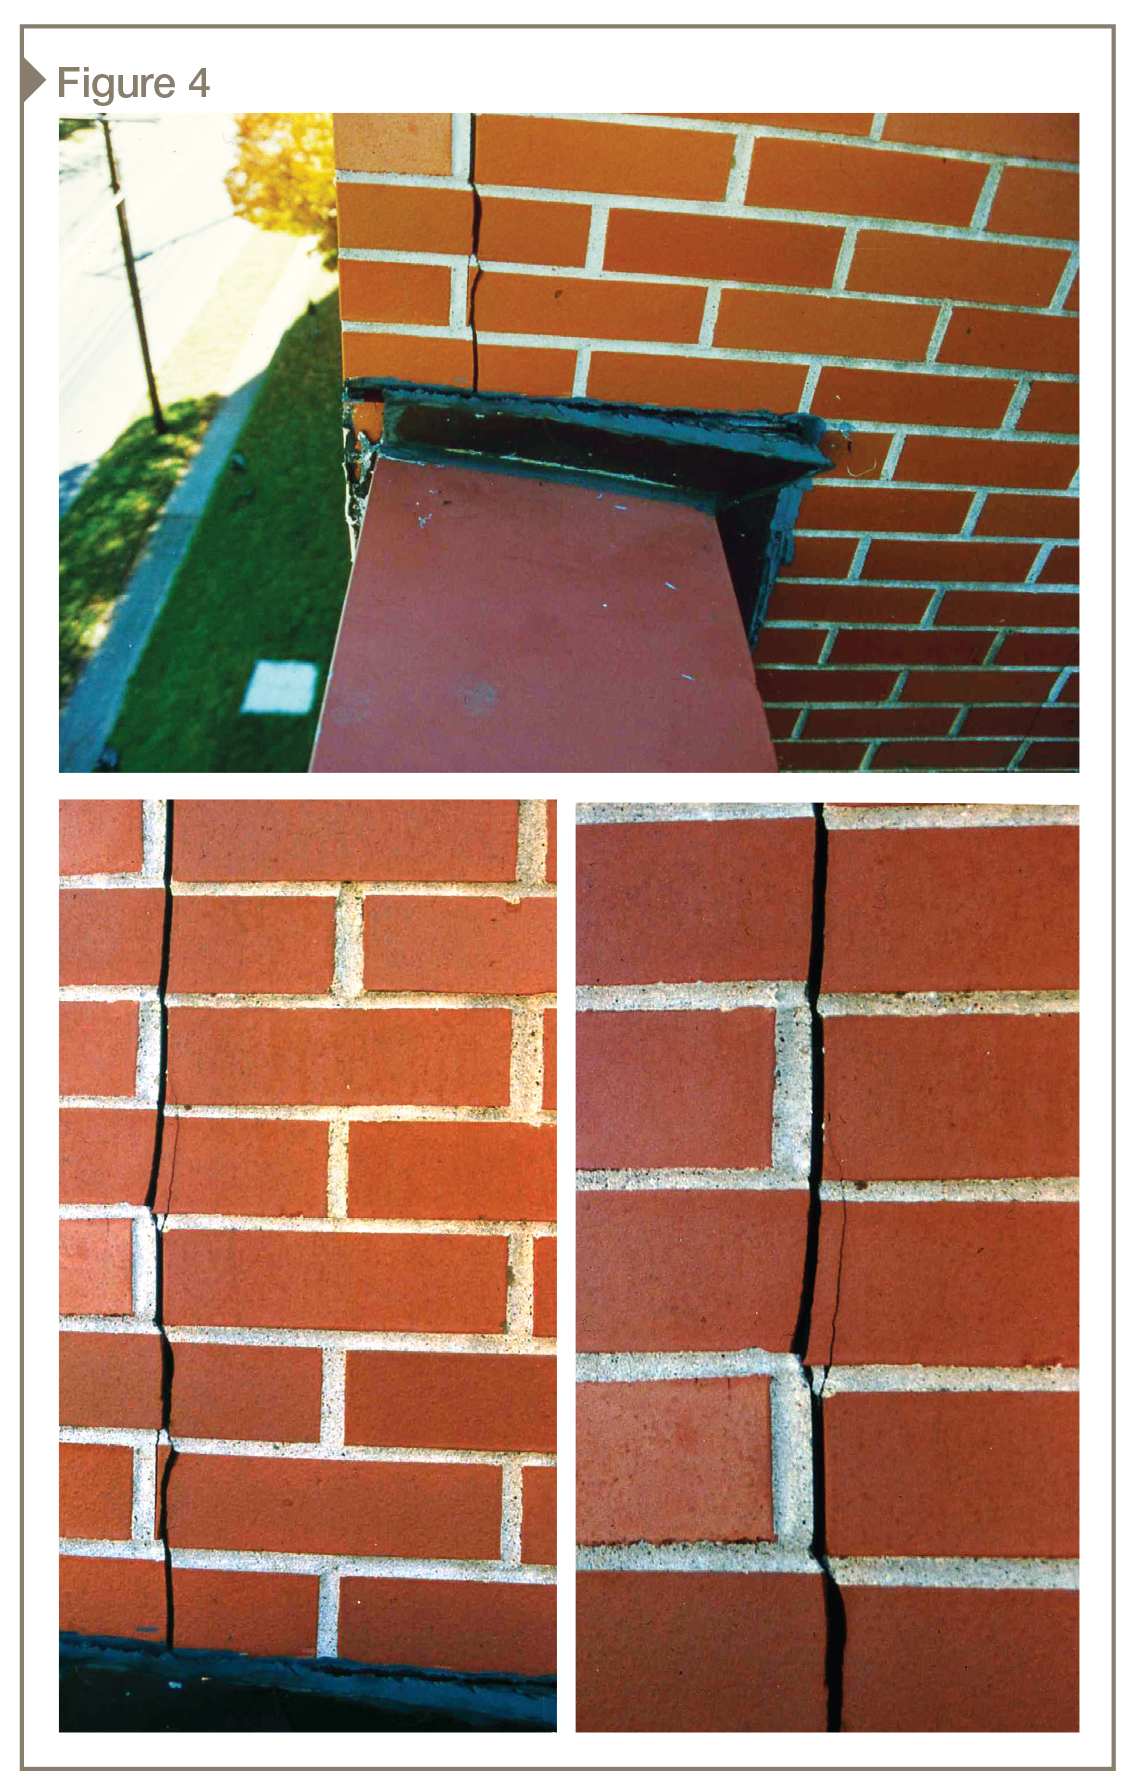 Exterior Vertical Foundation Crack